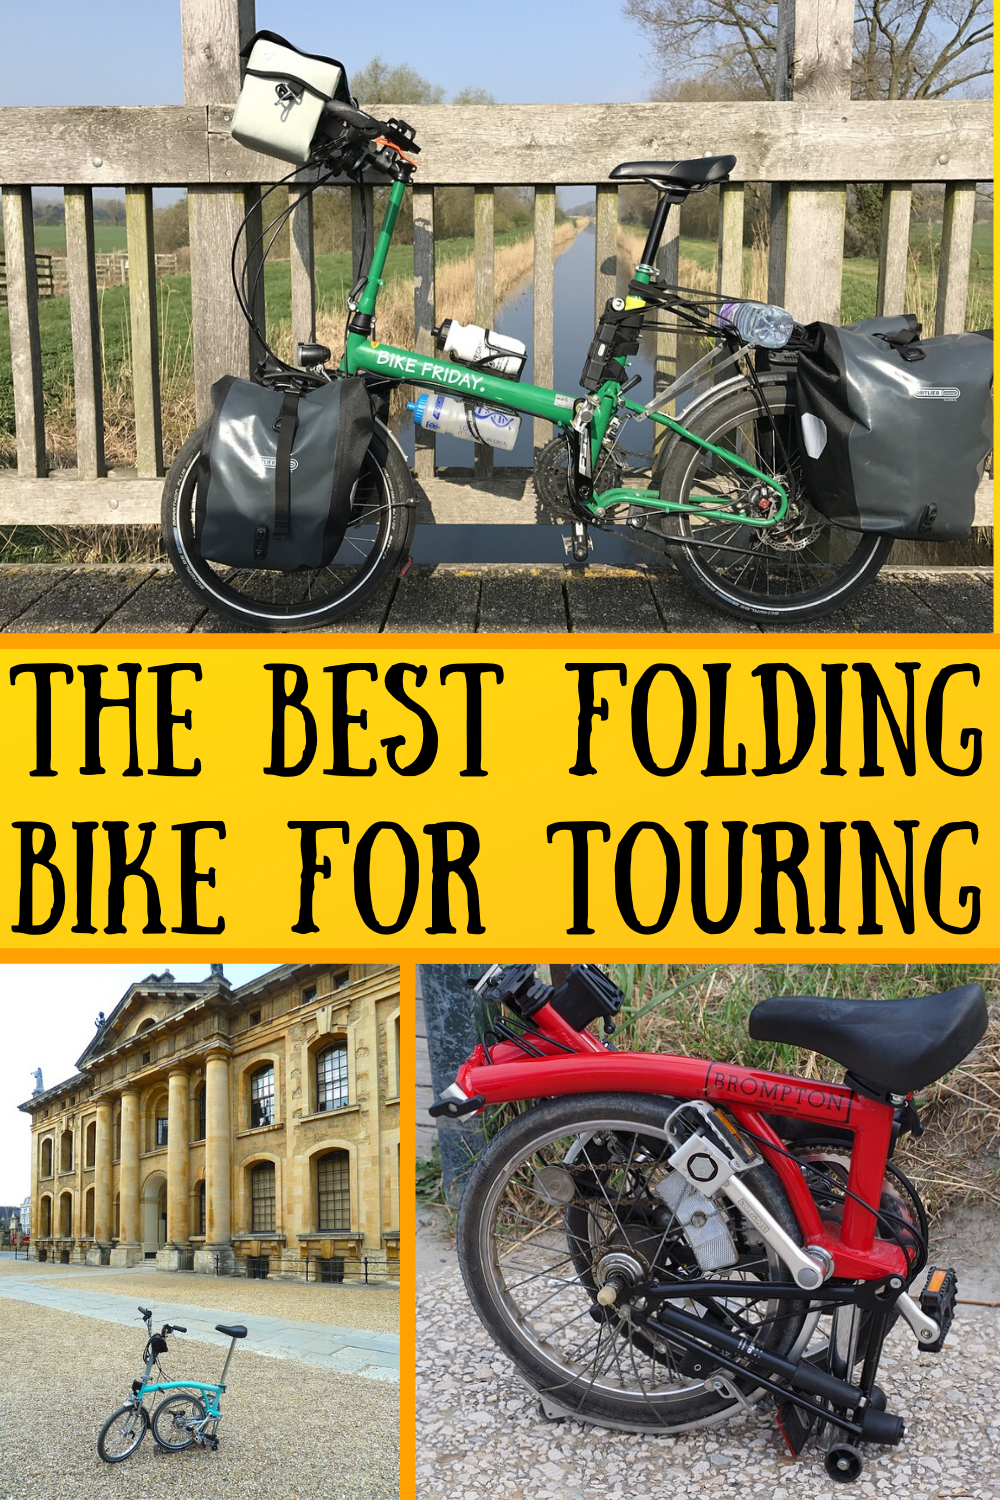 The Best Folding Bike For Touring My Pros And Cons List In 2020